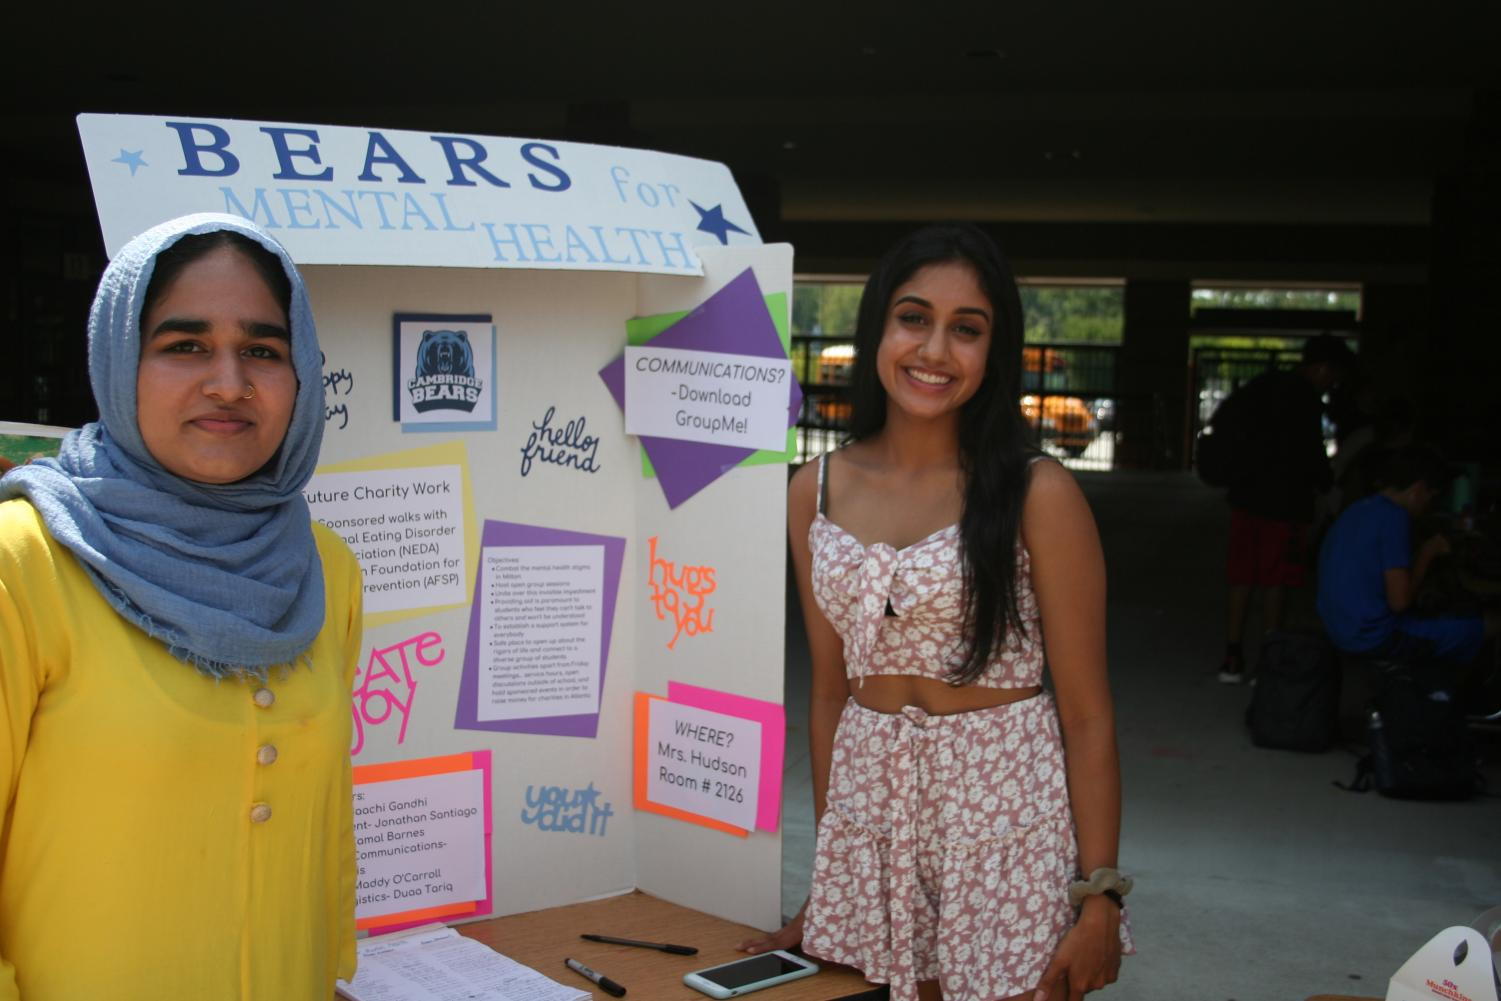 Seniors+Duaa+Tariq+and+Saachi+Gandhi+at+the+table+for+Bears+for+Mental+Health%2C+a+club+that+is+new+this+year.